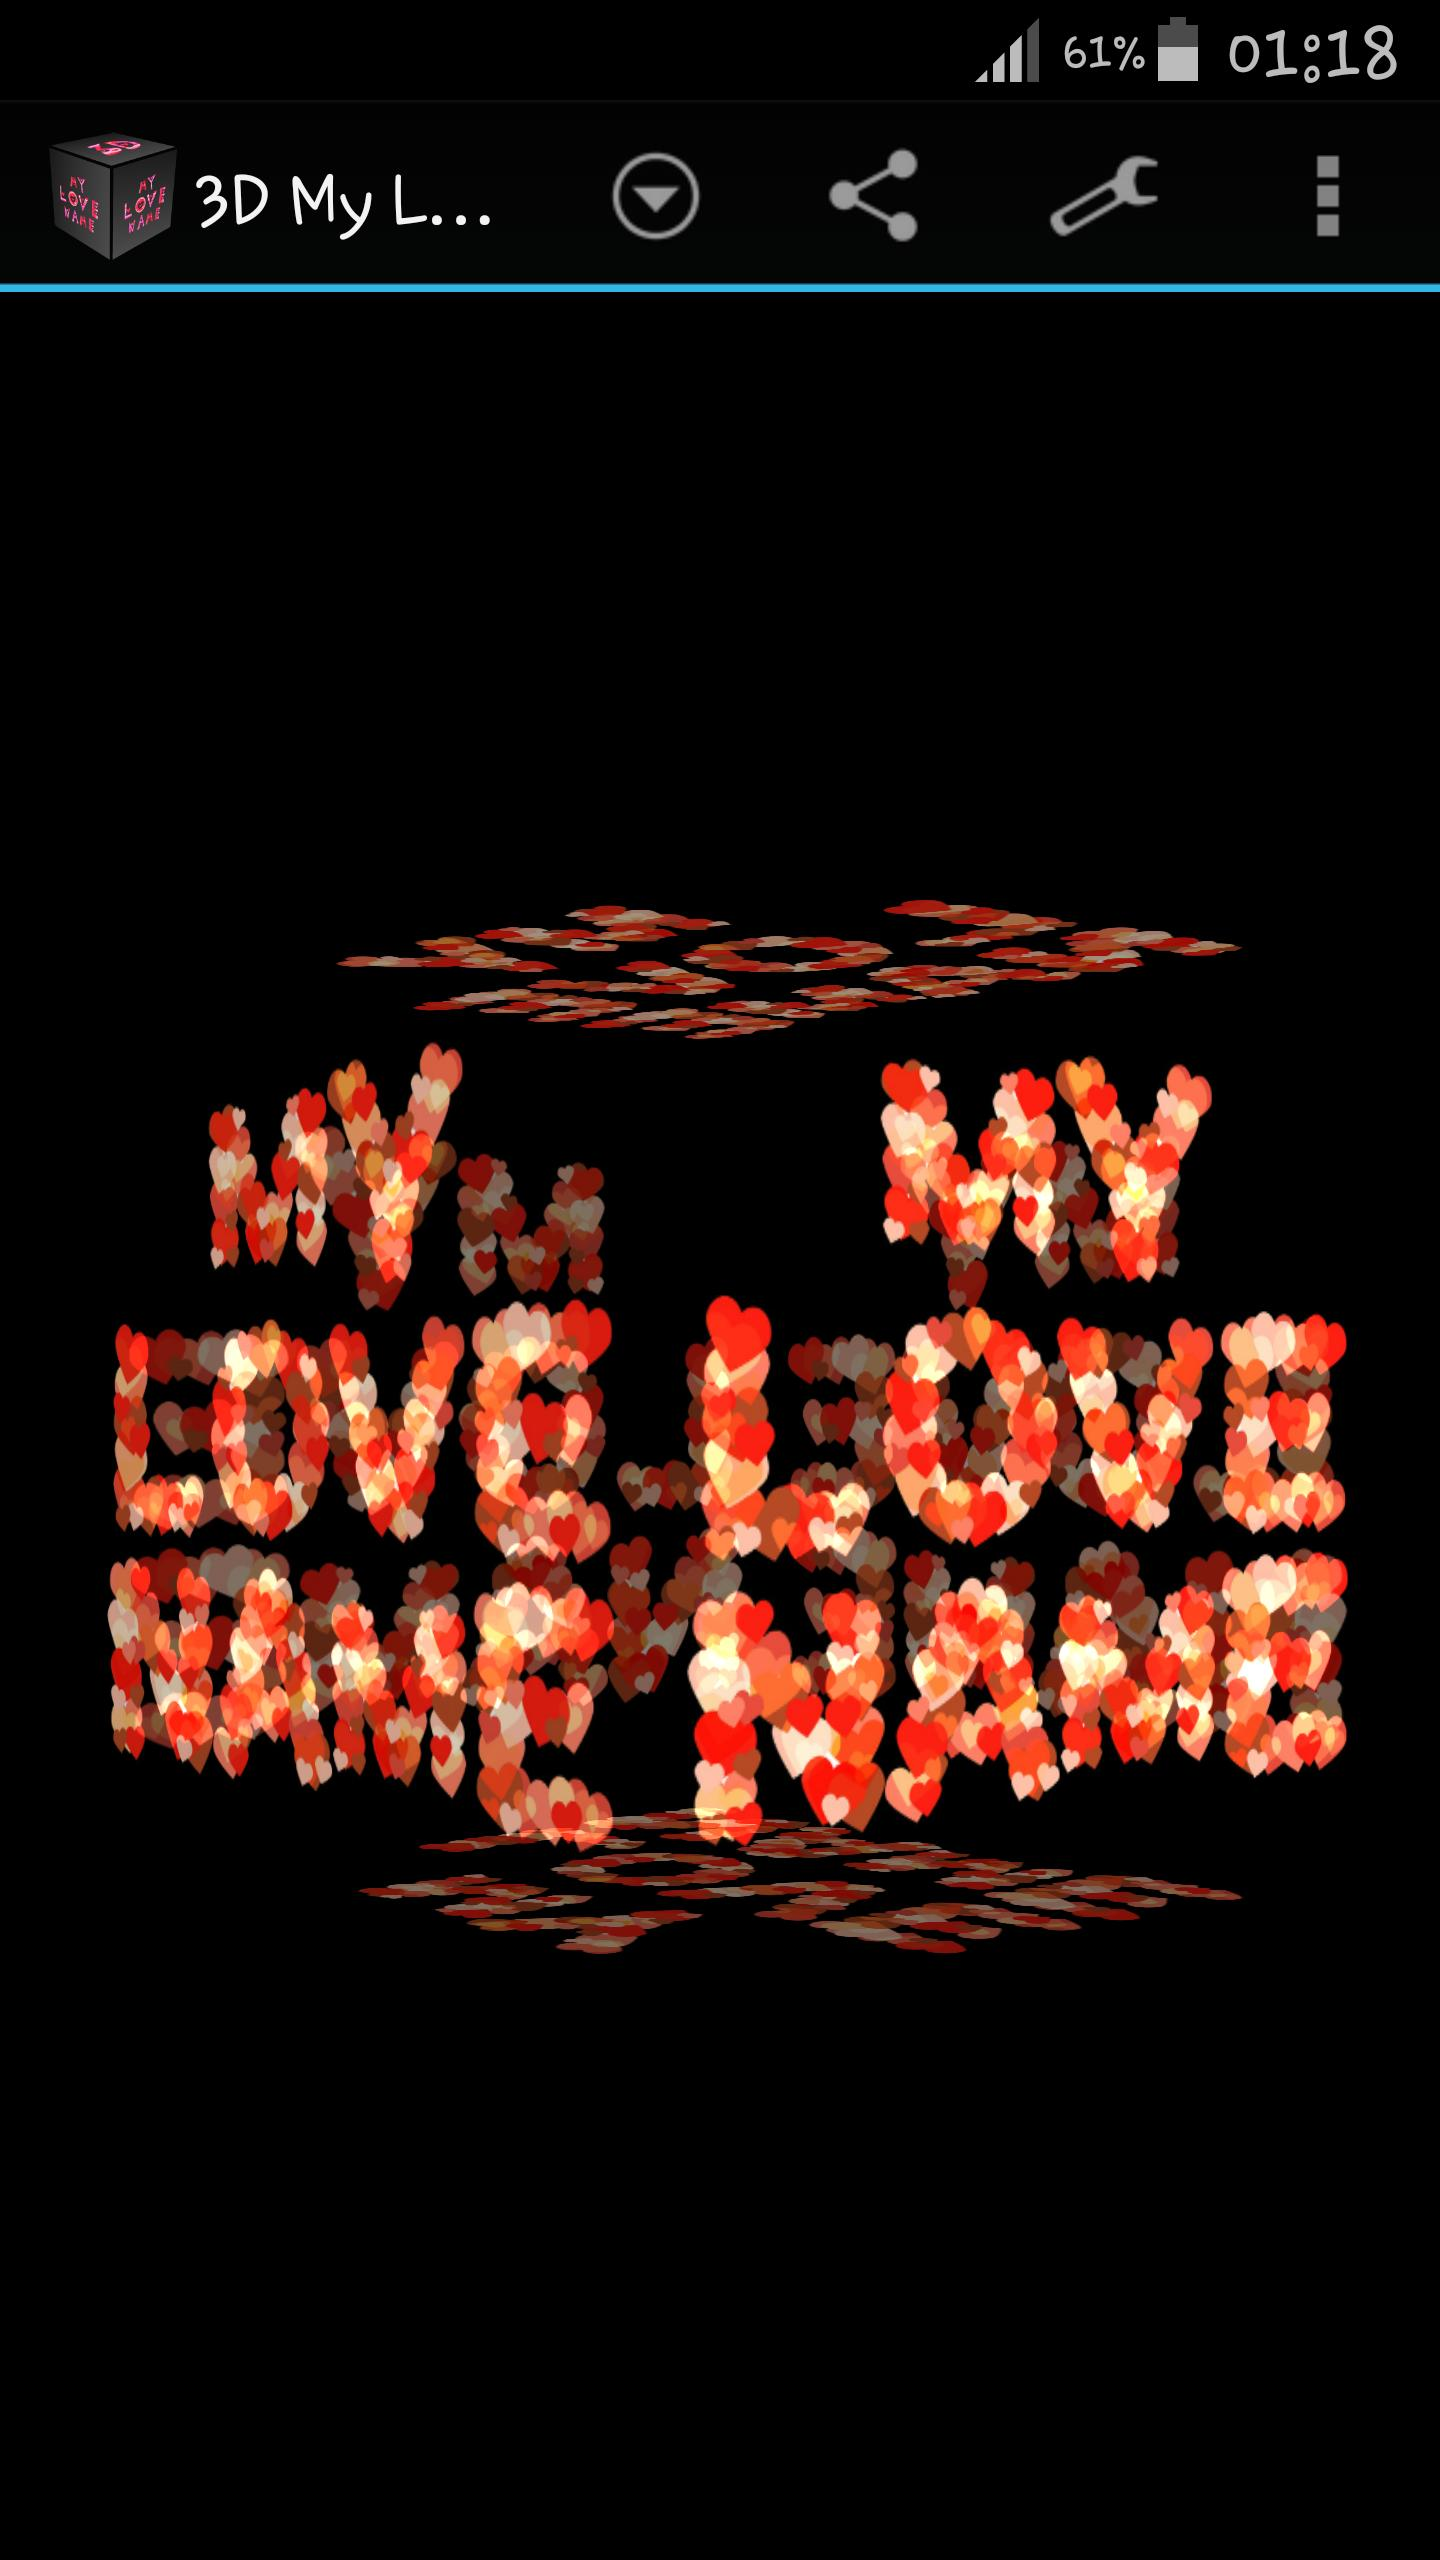 3d My Name Love Live Wallpaper For Android Apk Download